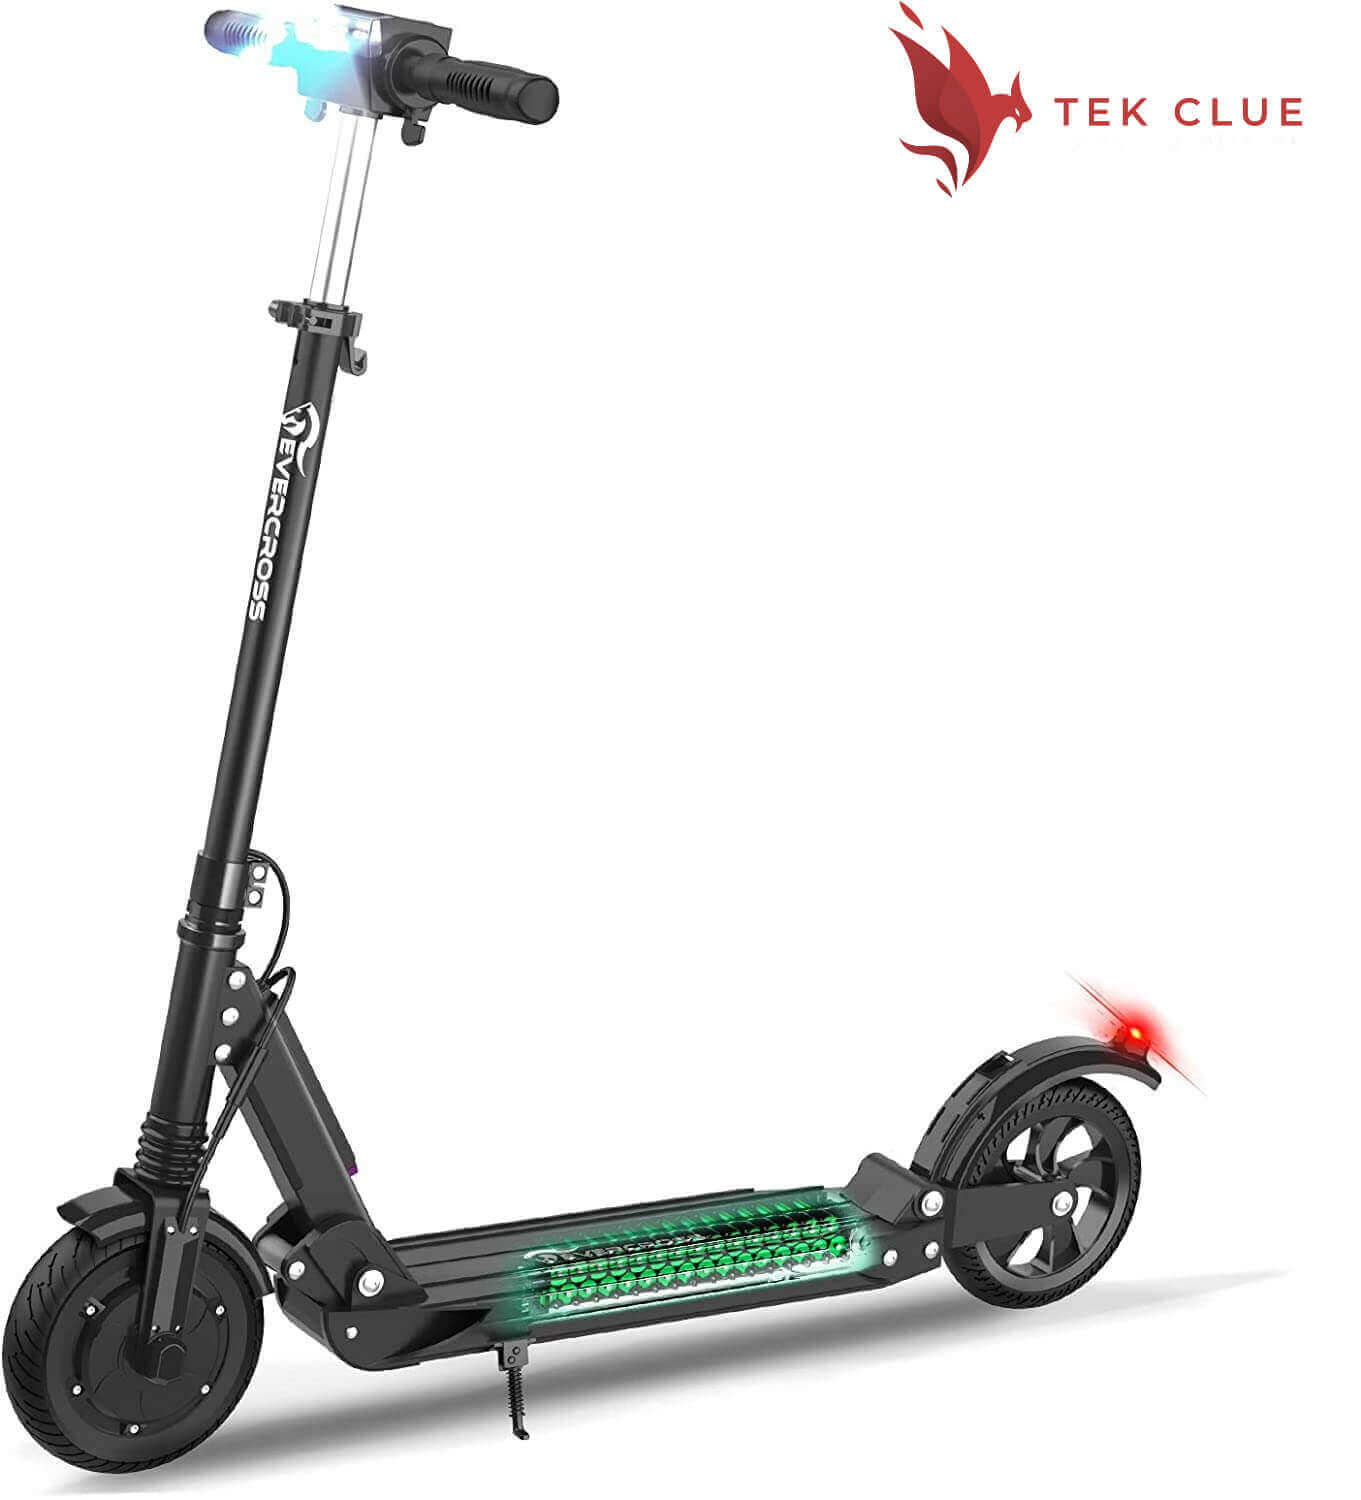 EVERCROSS Electric Scooter2